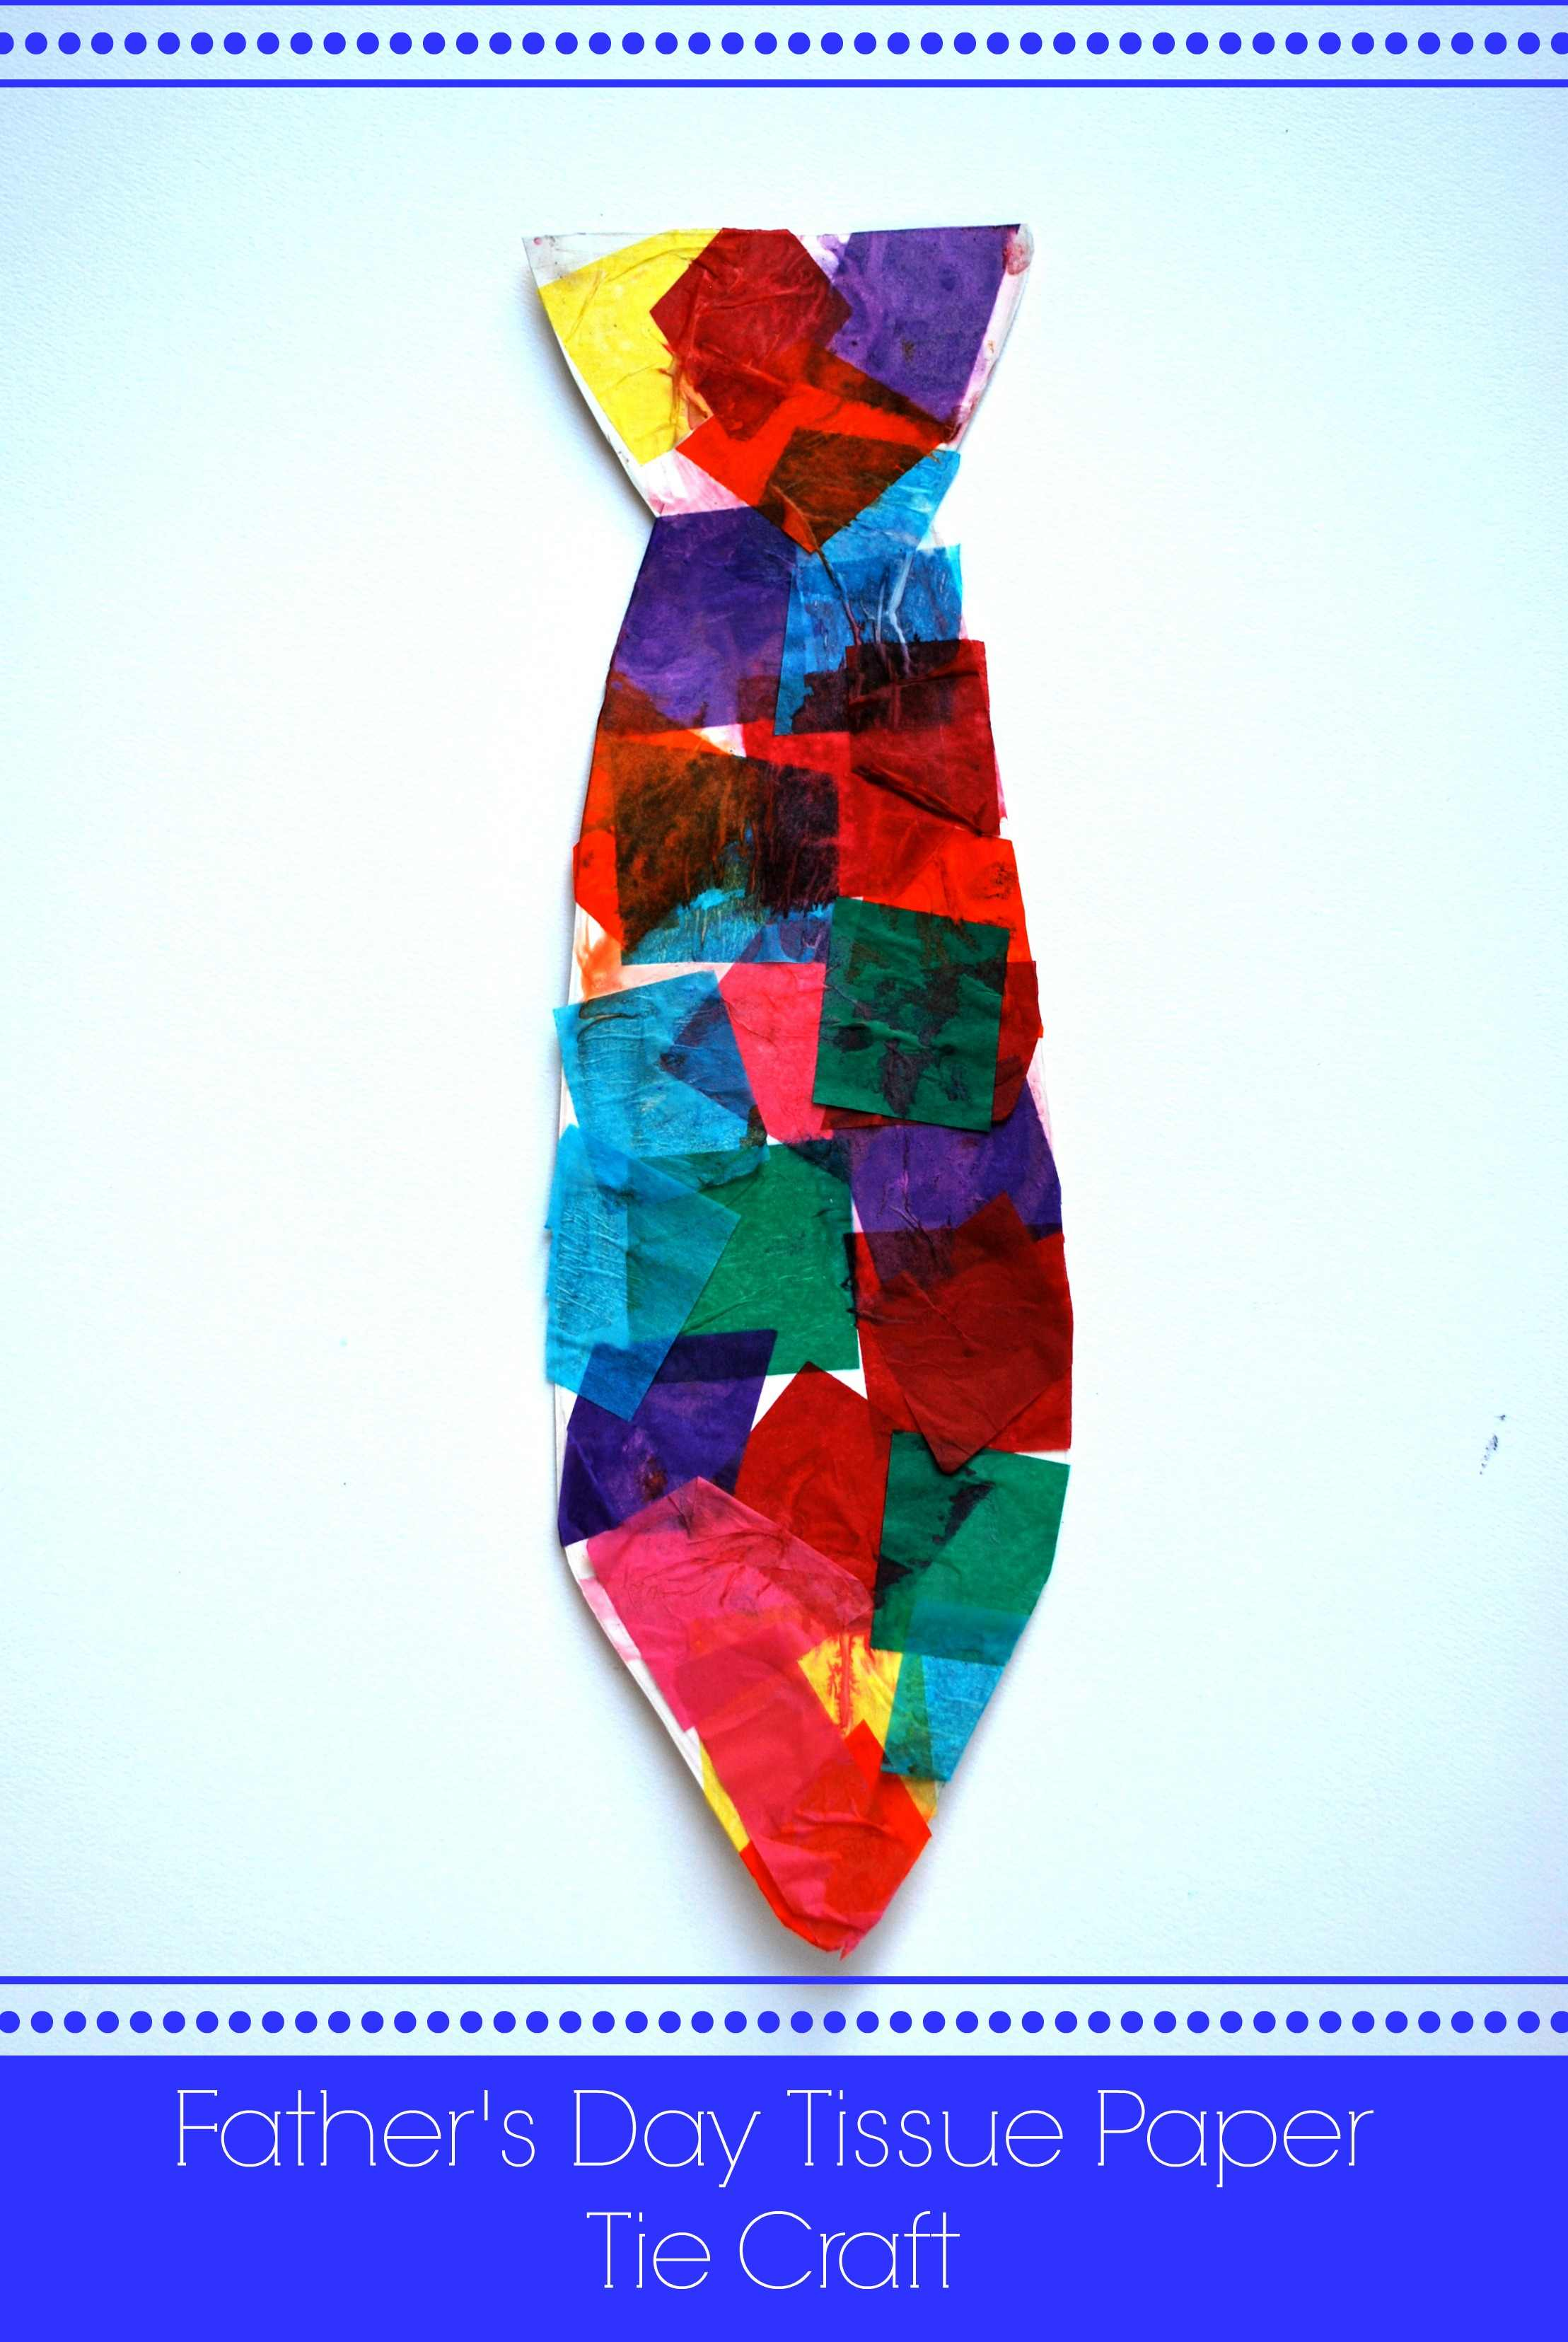 Father's Day Tissue Paper Tie Craft